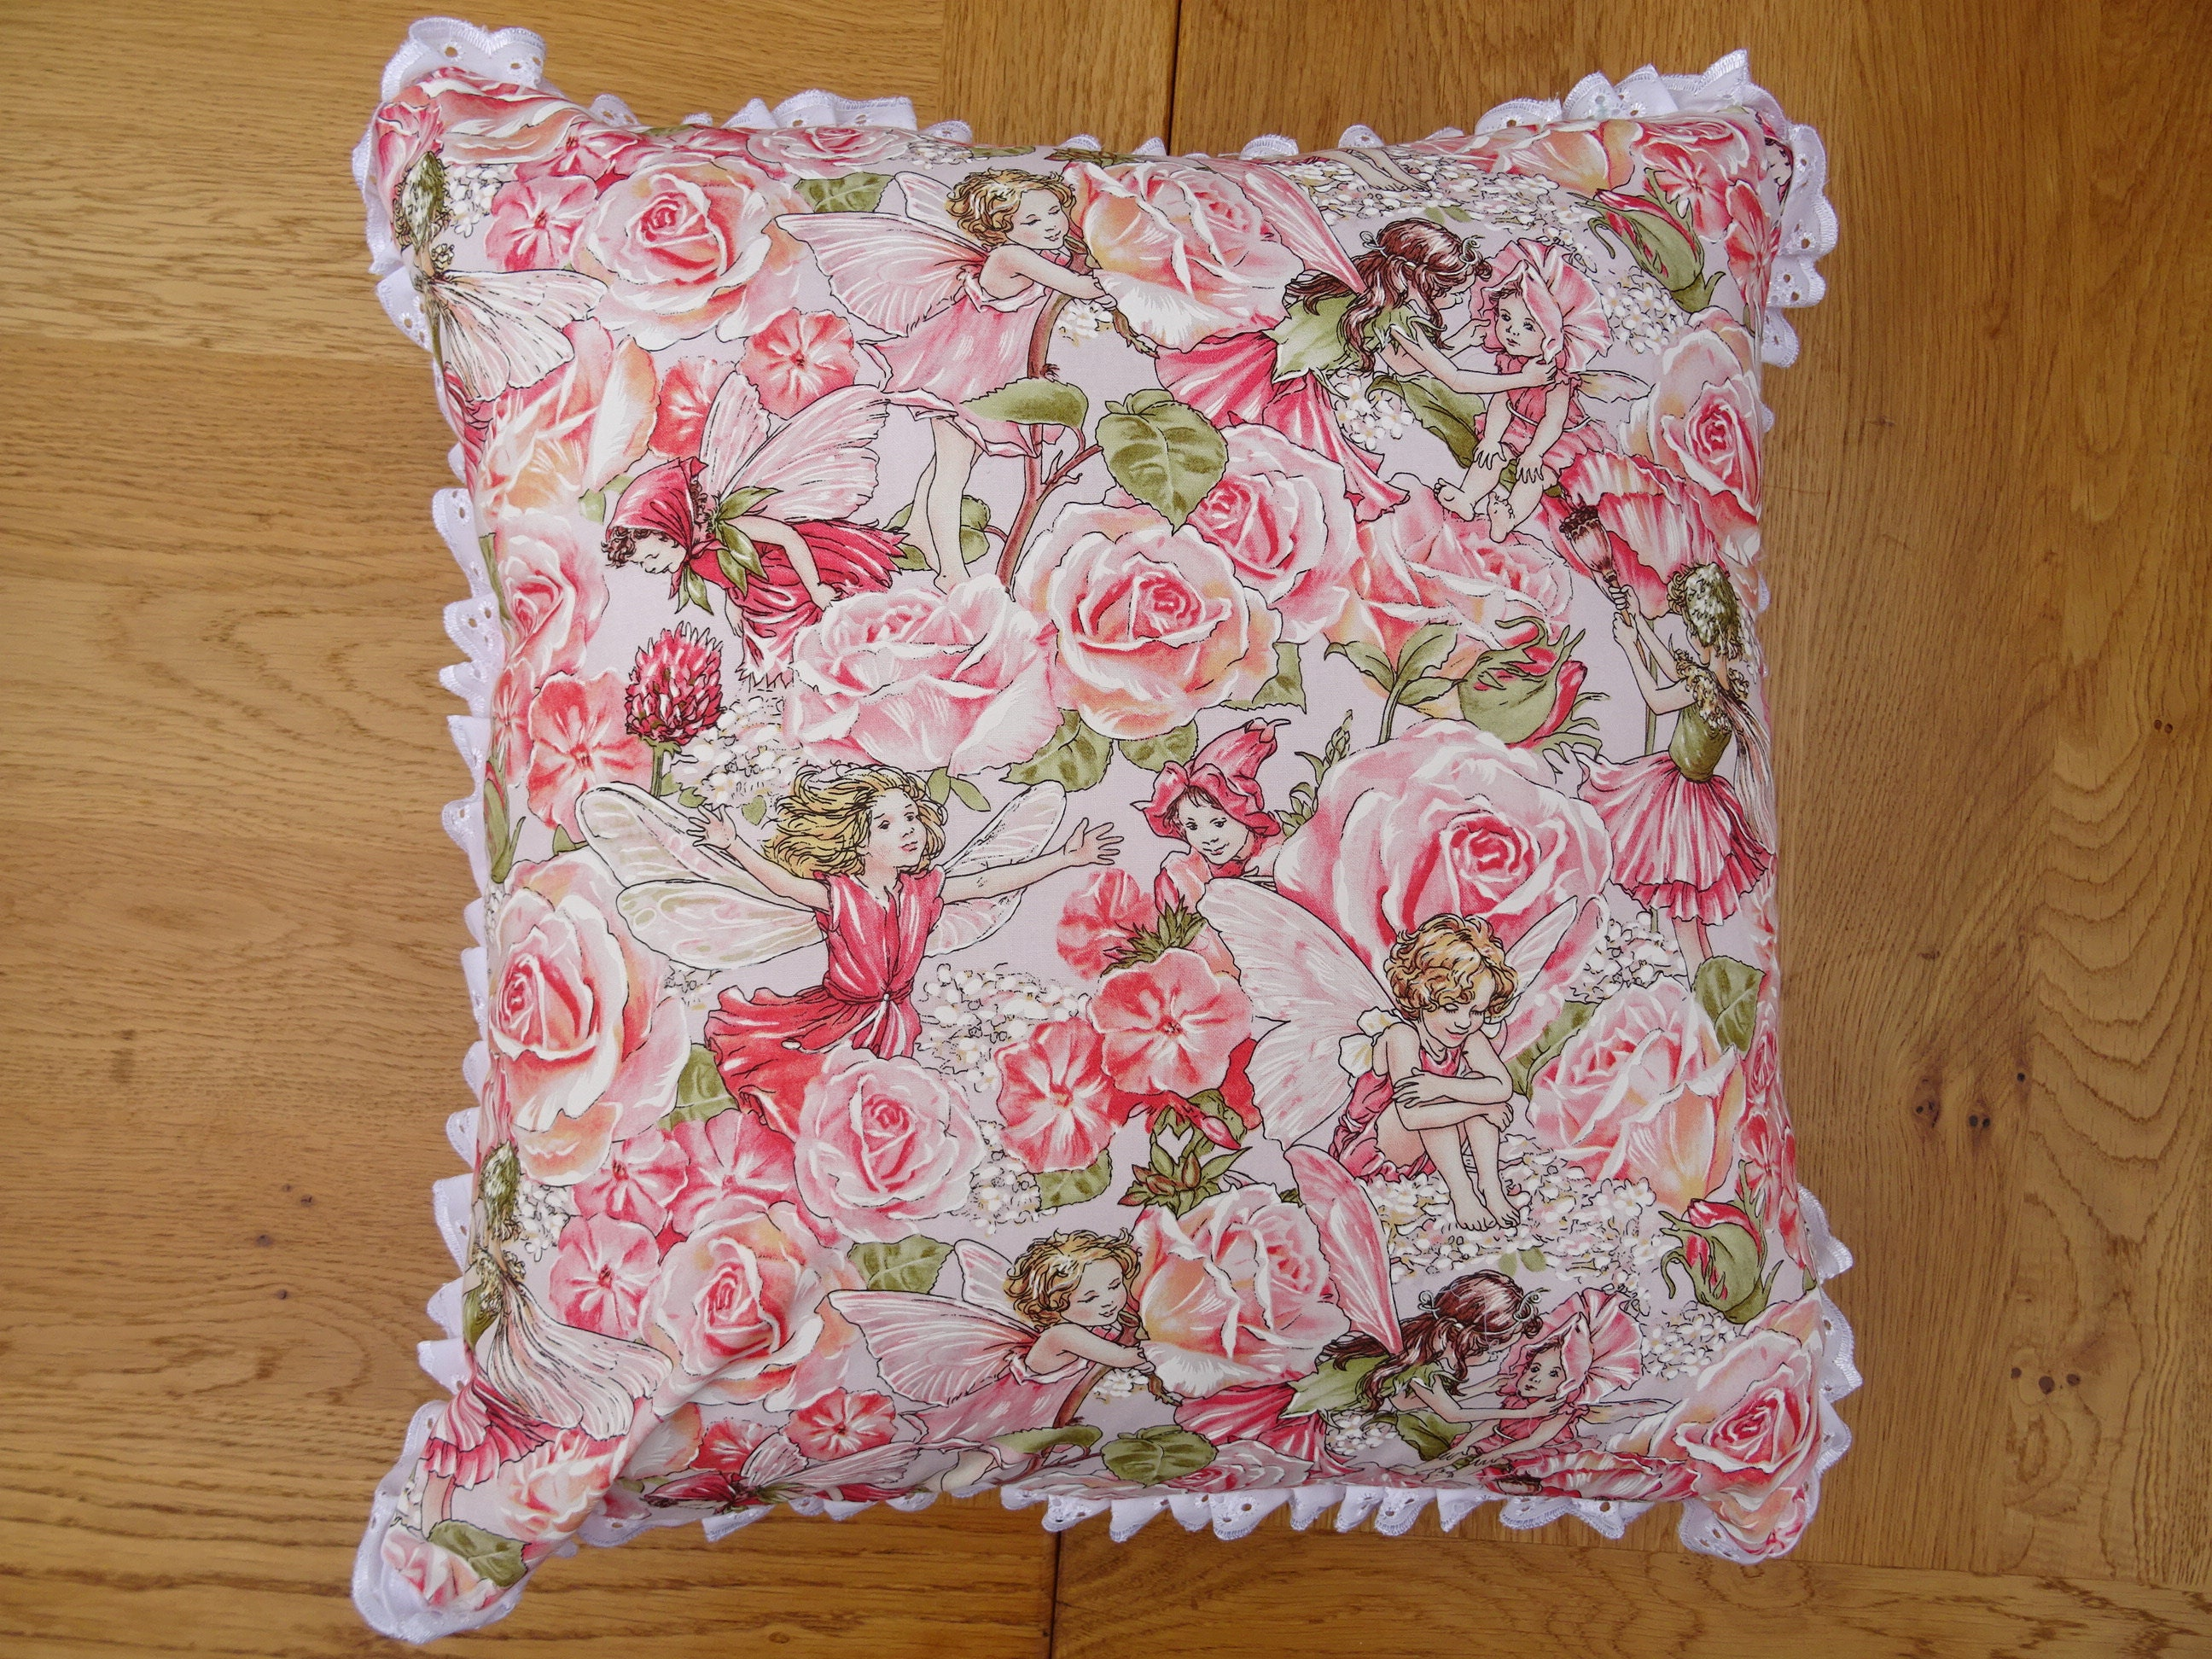 Flower Fairies Cushion Cover 18 Inch 46 Cm With Or Without Insert